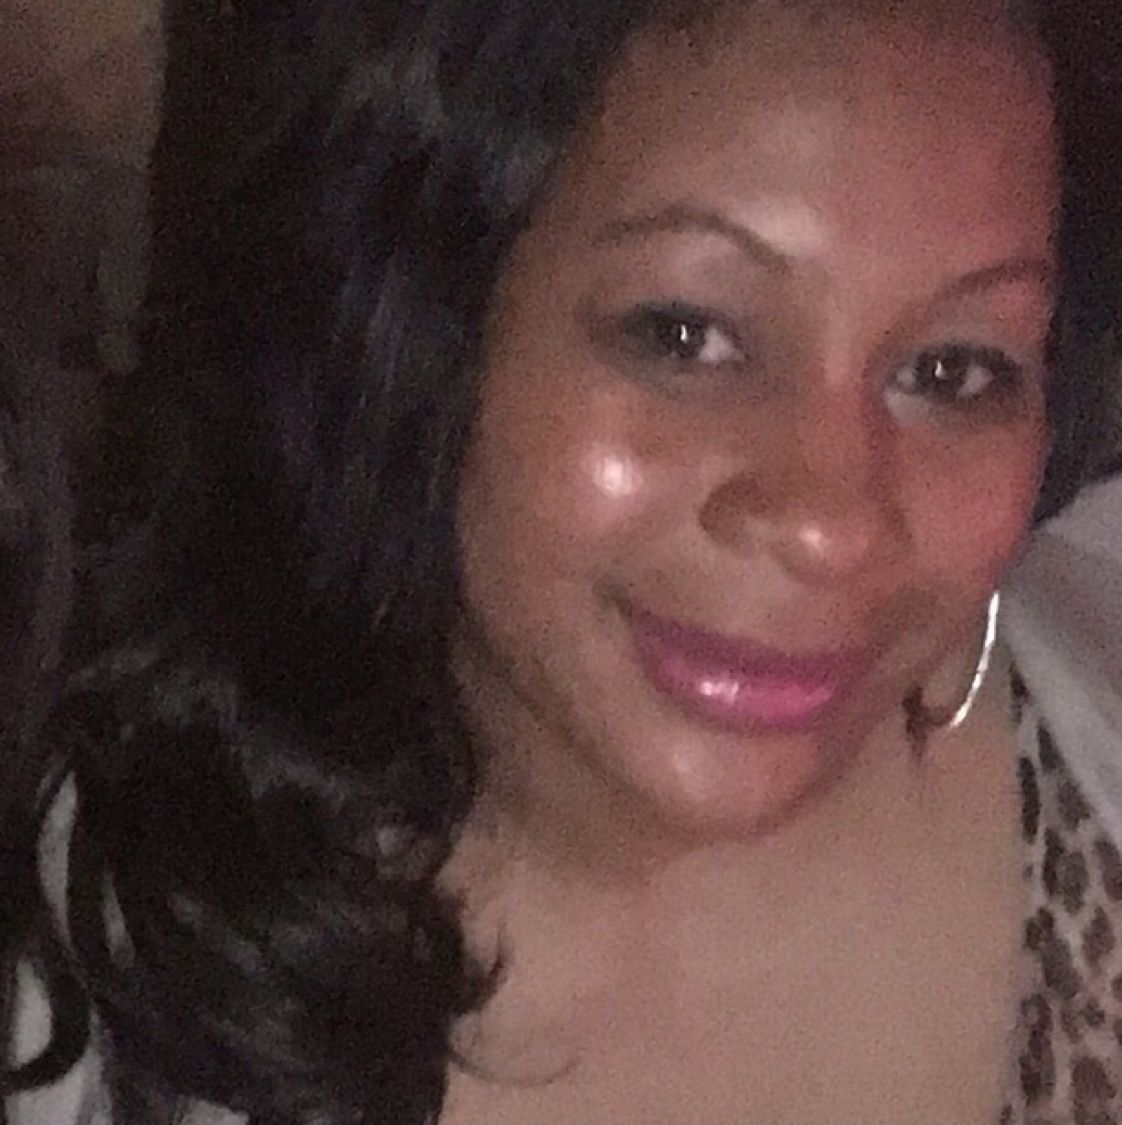 charlotte hispanic singles Looking for charlotte black latino women browse the latest members below to see your perfect match send a message and setup a meet up tonight our site has 1000's of members that just can't wait to talk to somebody just like you, black latino dating.